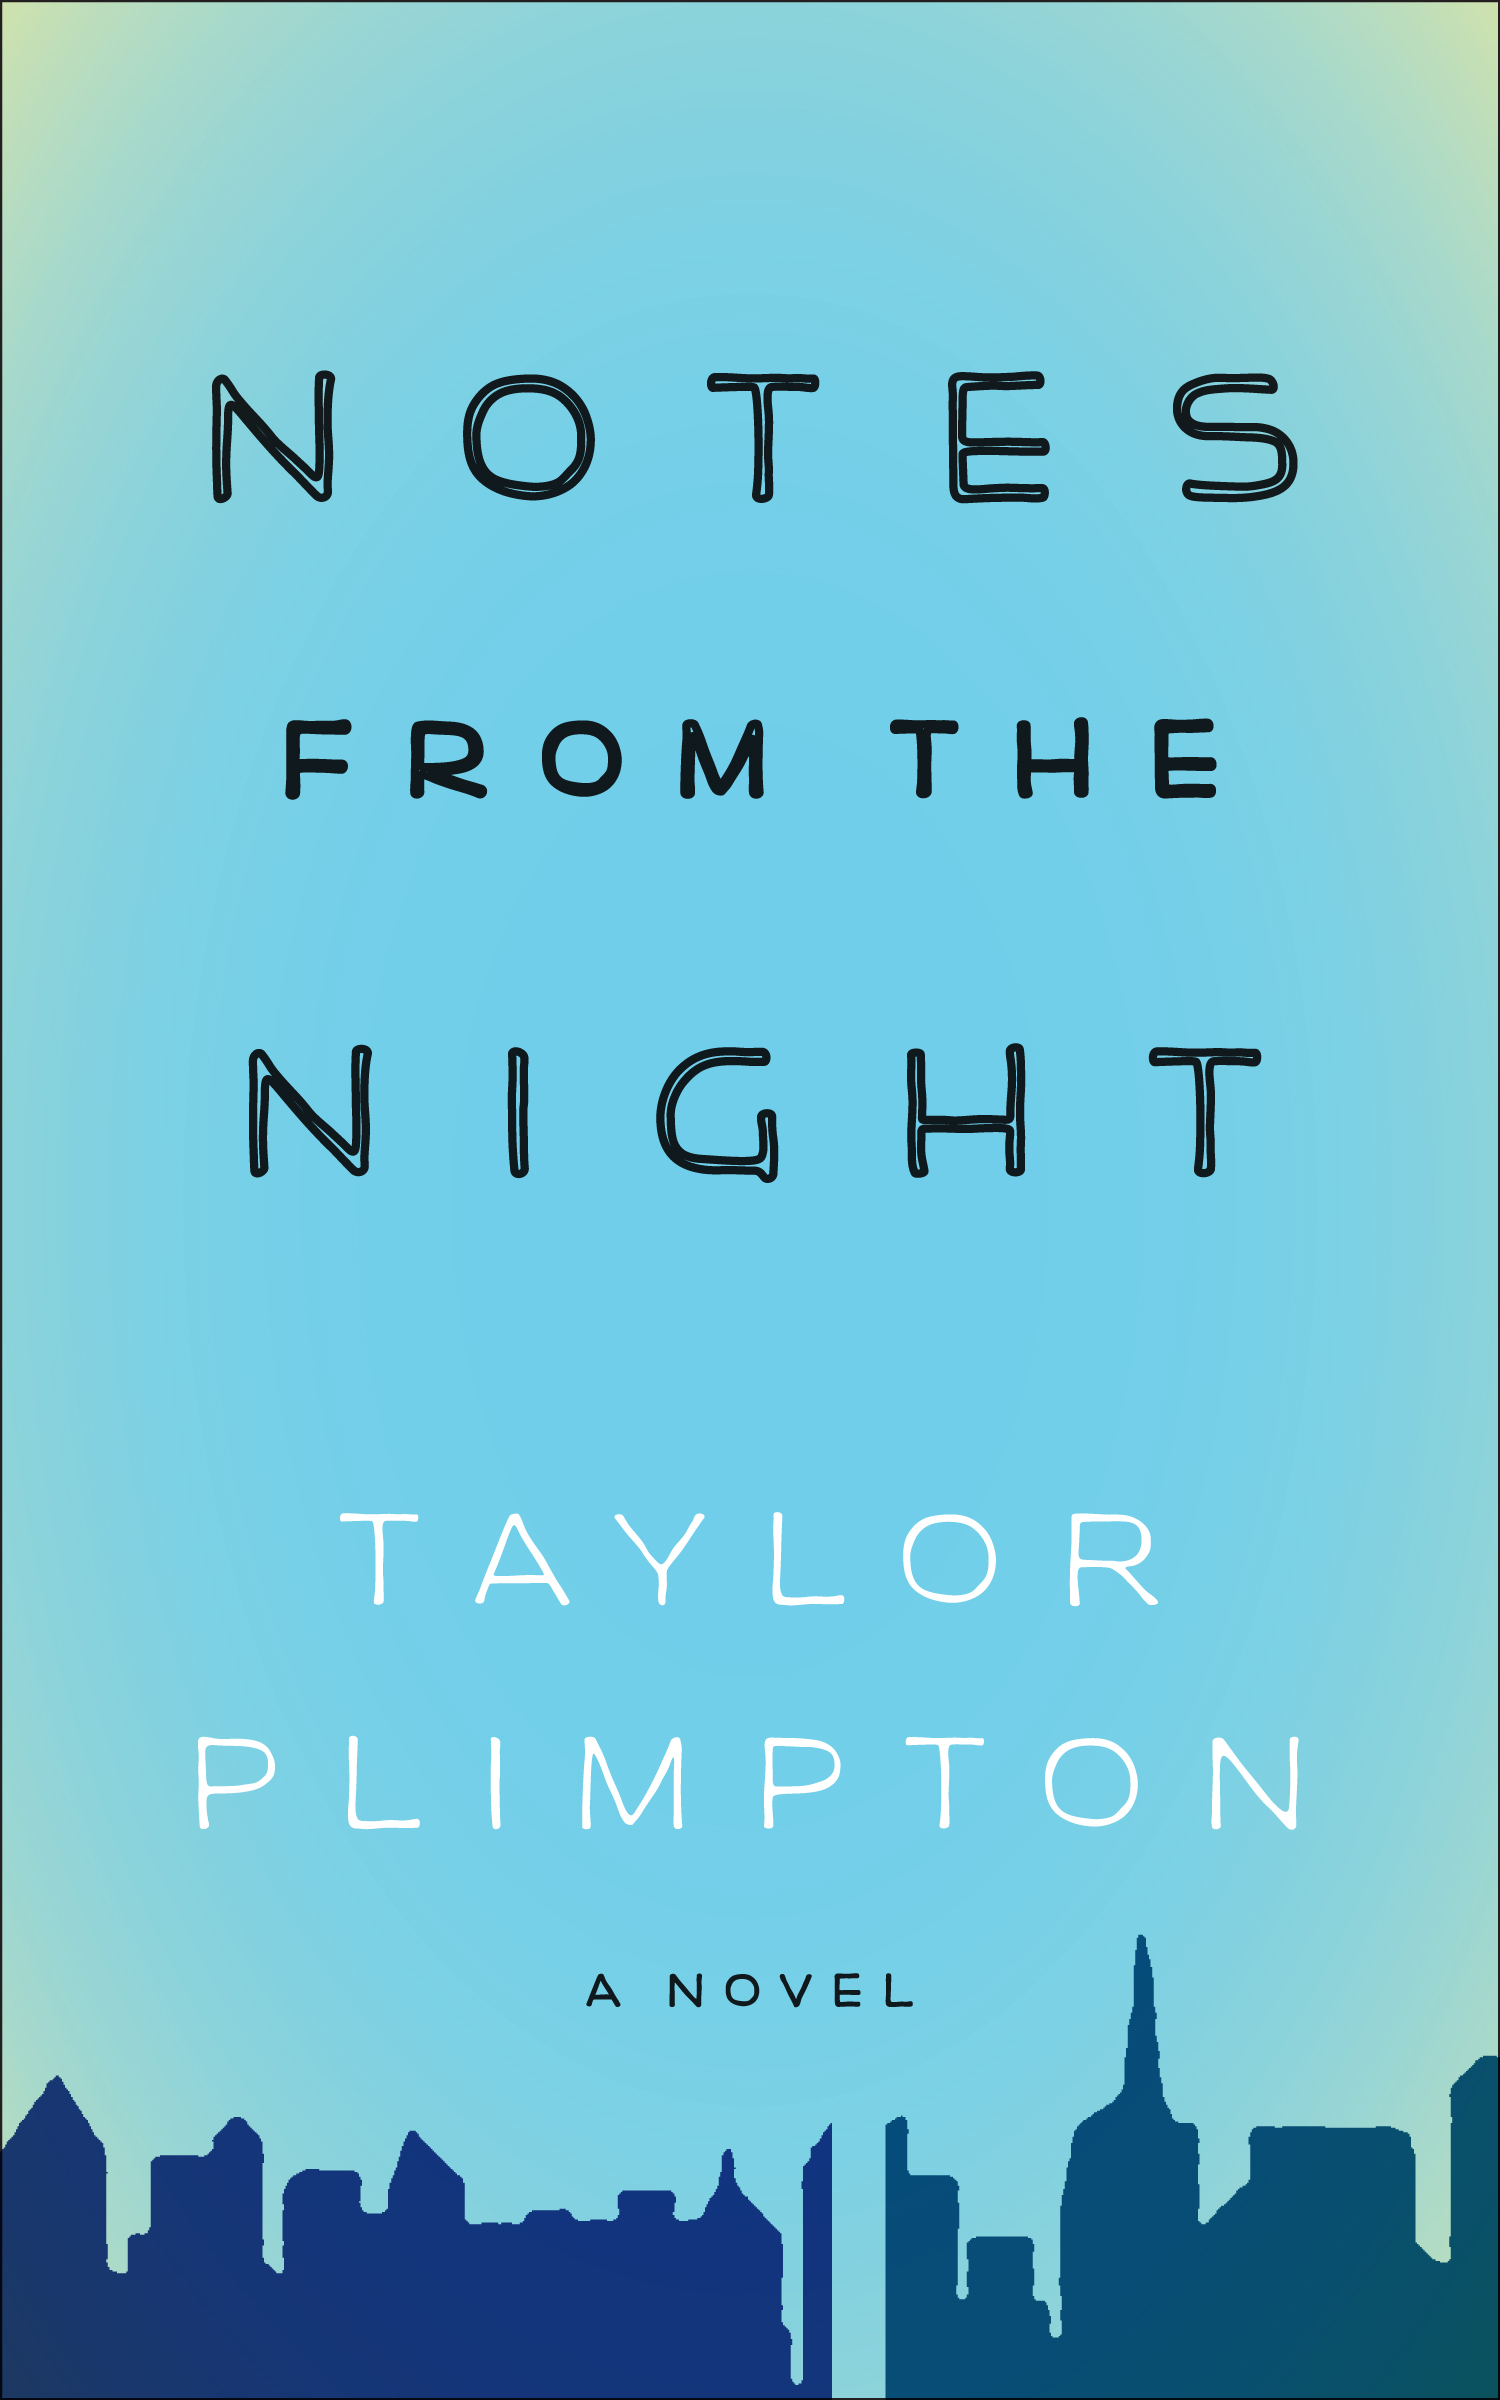 NOTES-FROM-THE-NIGHT-comp2-ss6.jpg